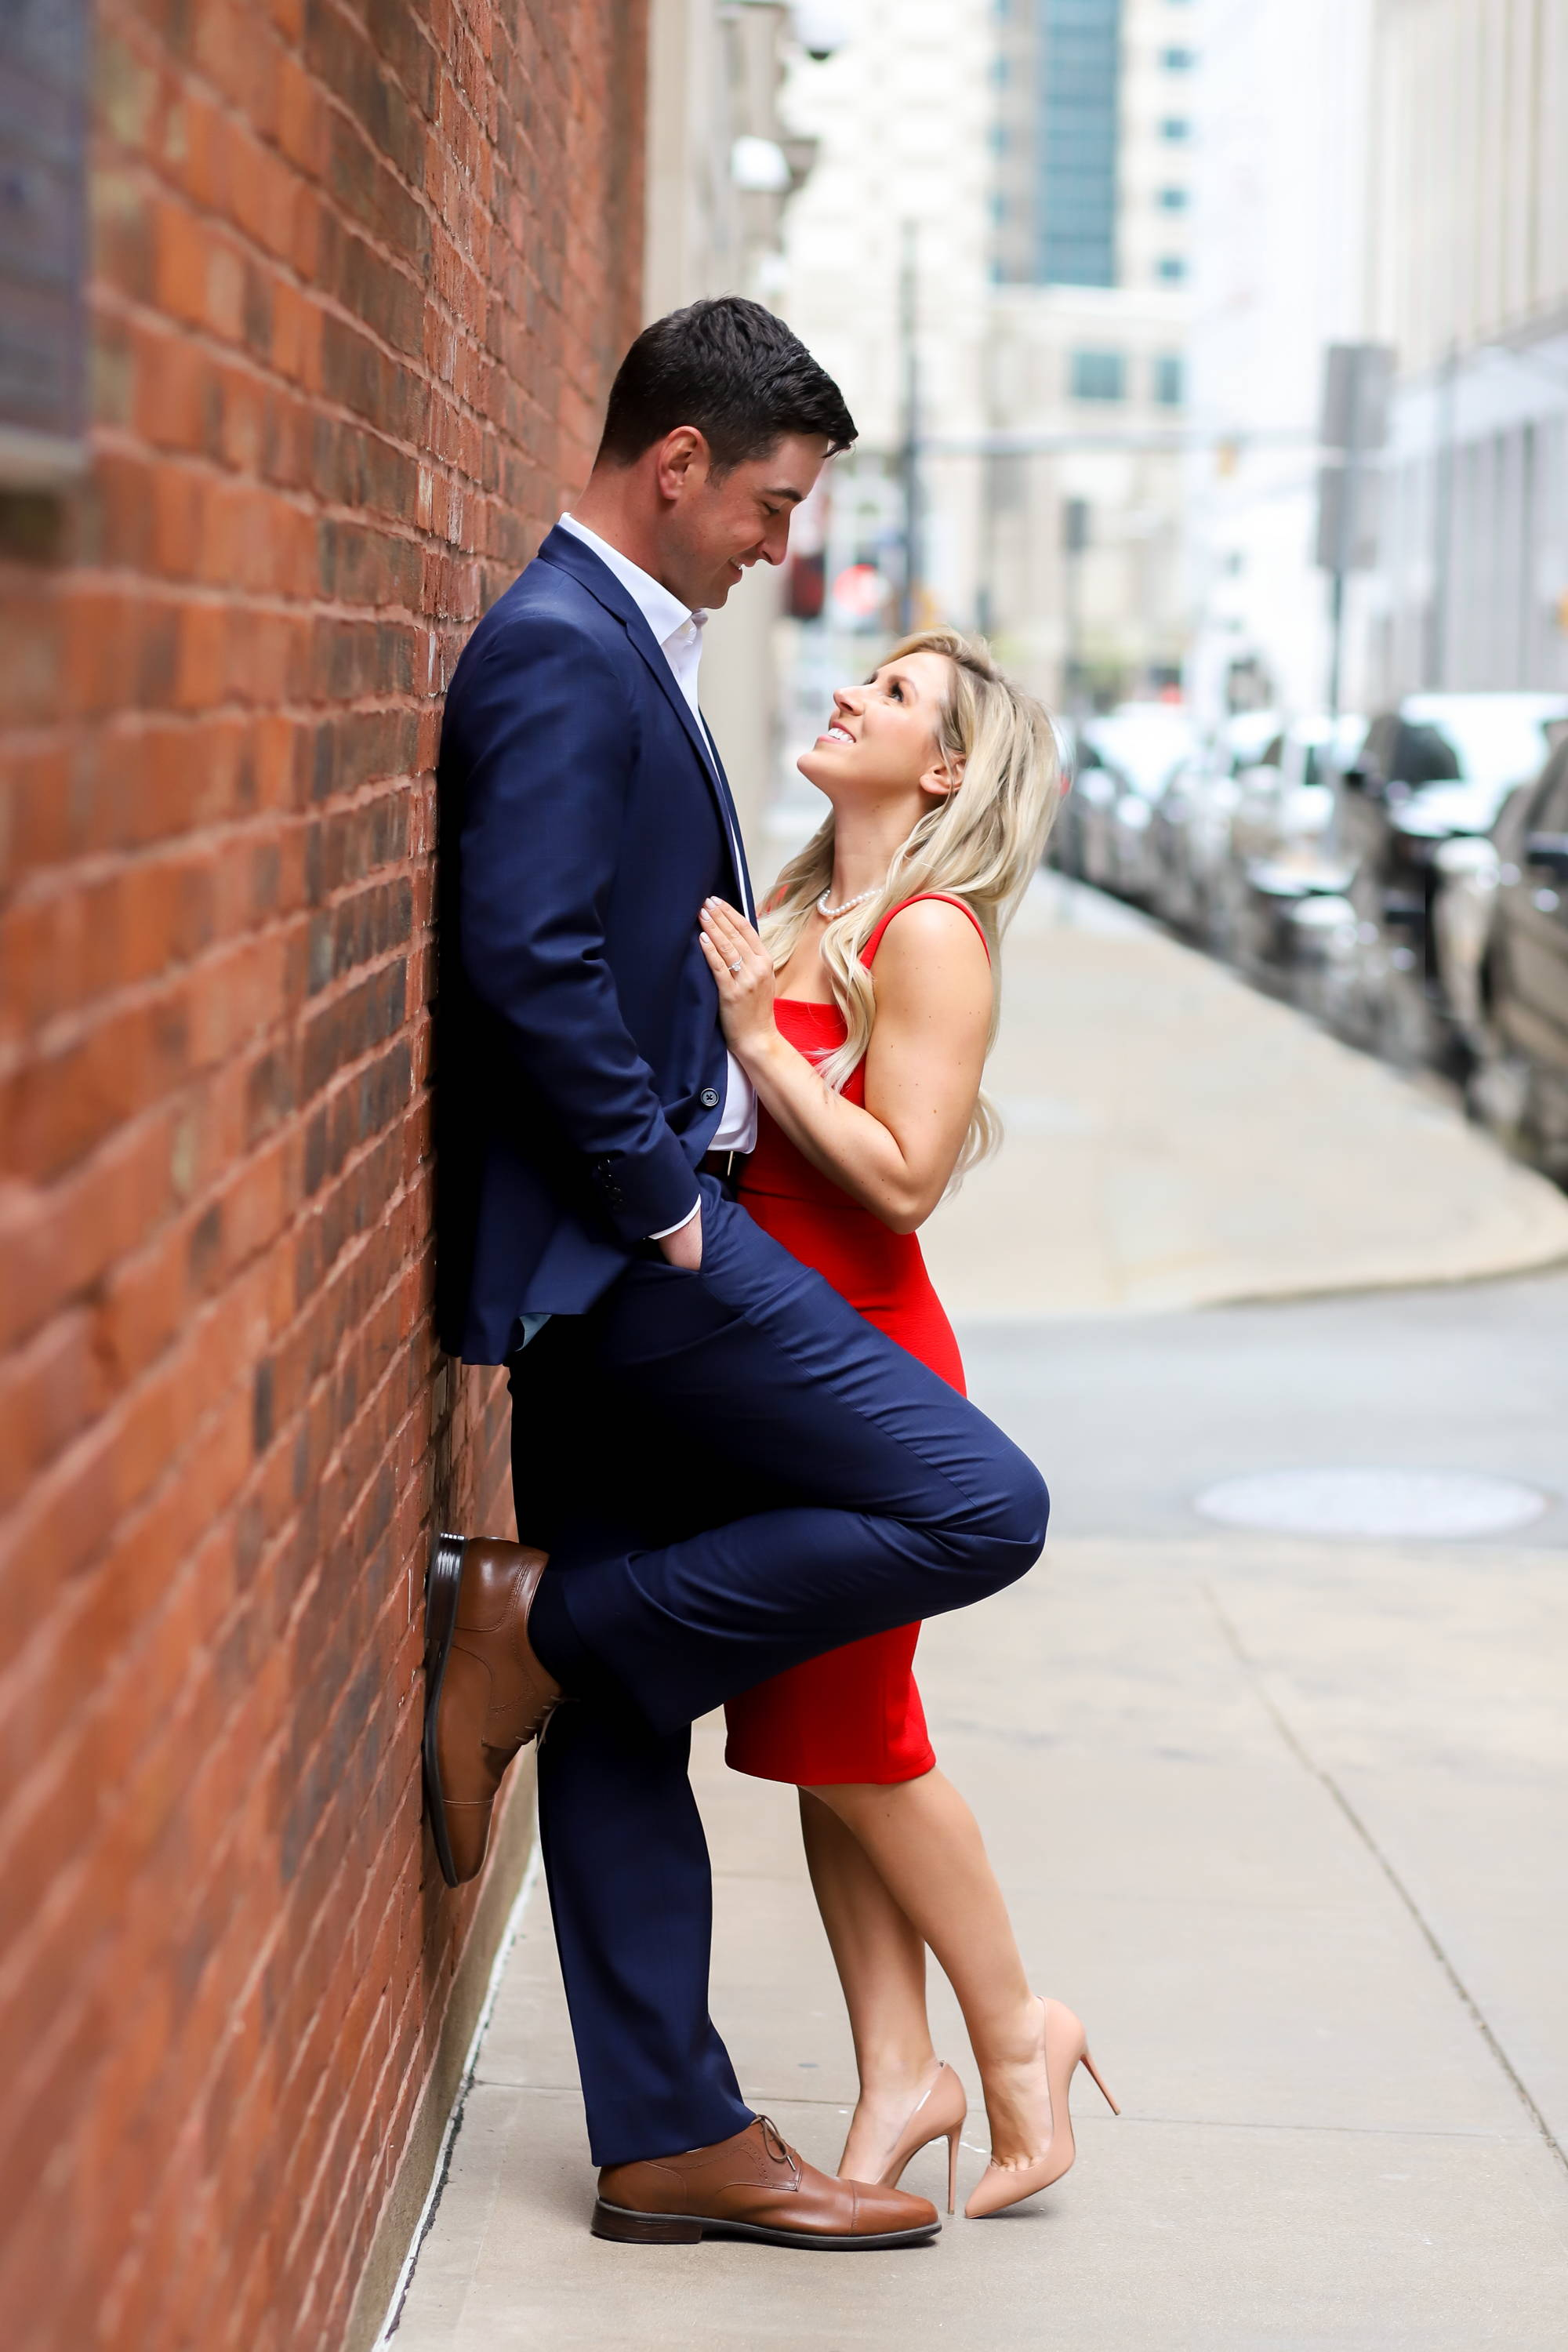 Henne Engagement Ring Couple Standing Next to a Brick Wall and Gazing at Each Other Lovingly